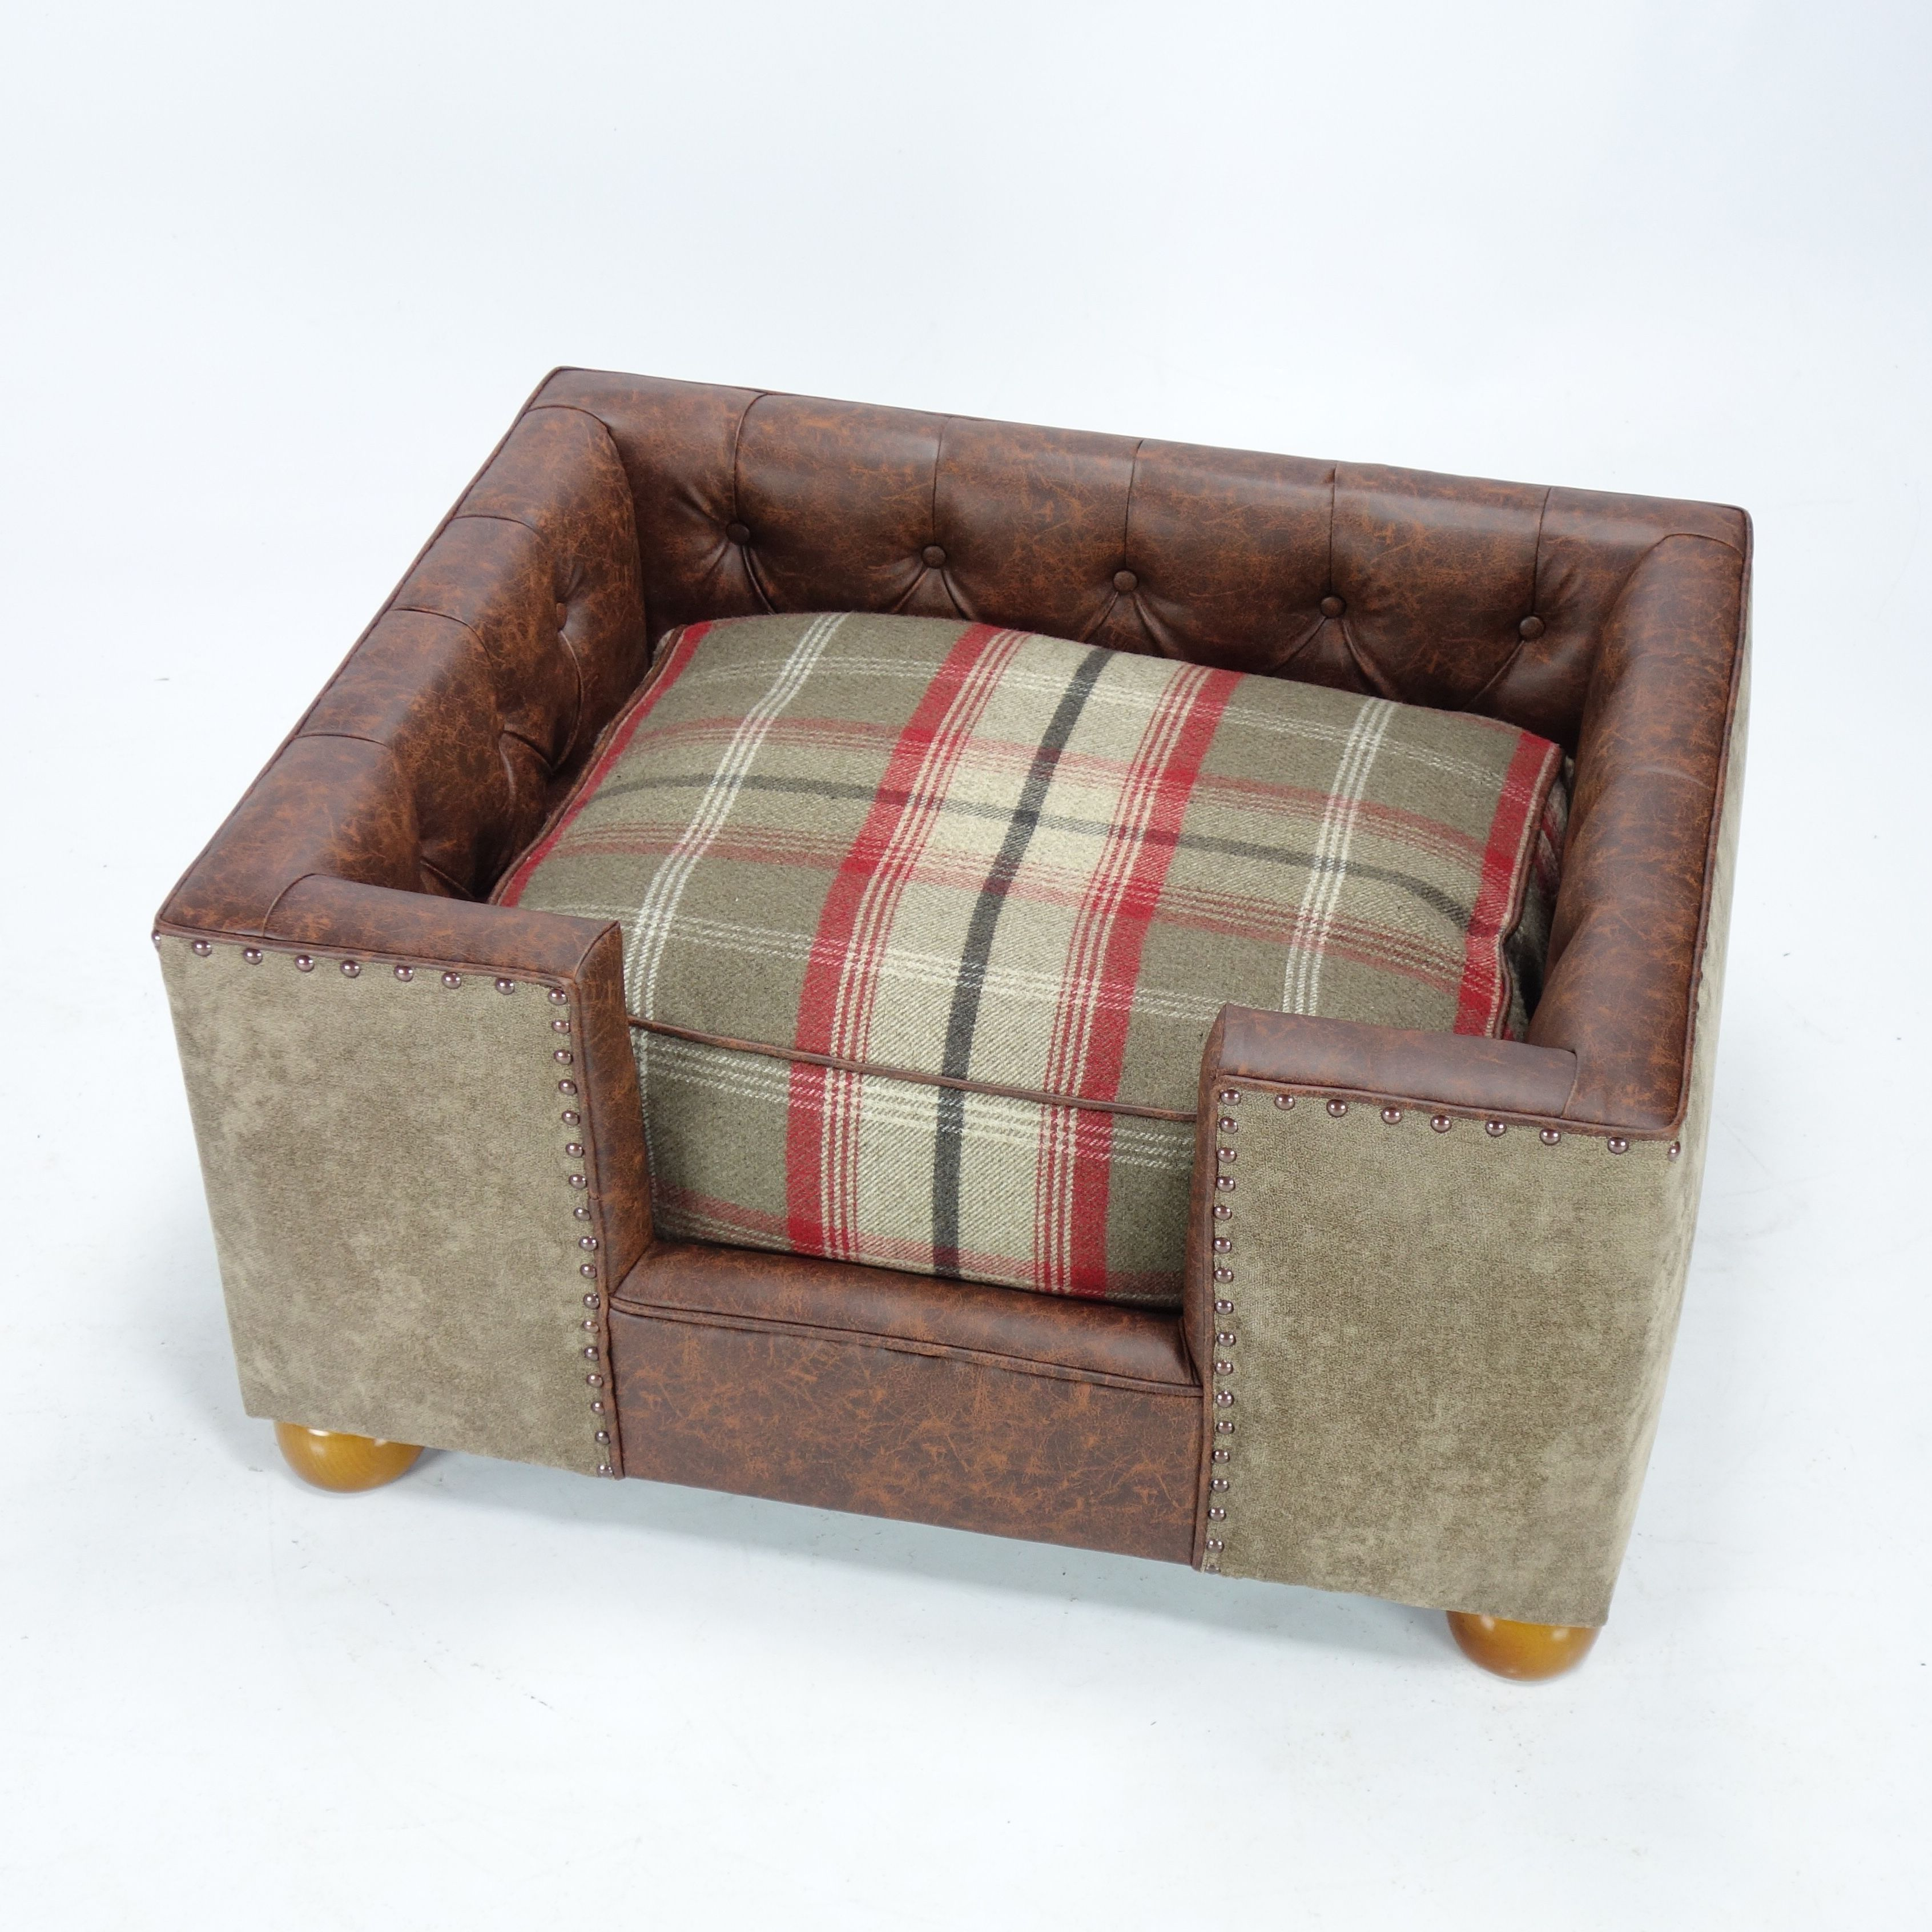 A Luxury Dog Bed Chesterfield With